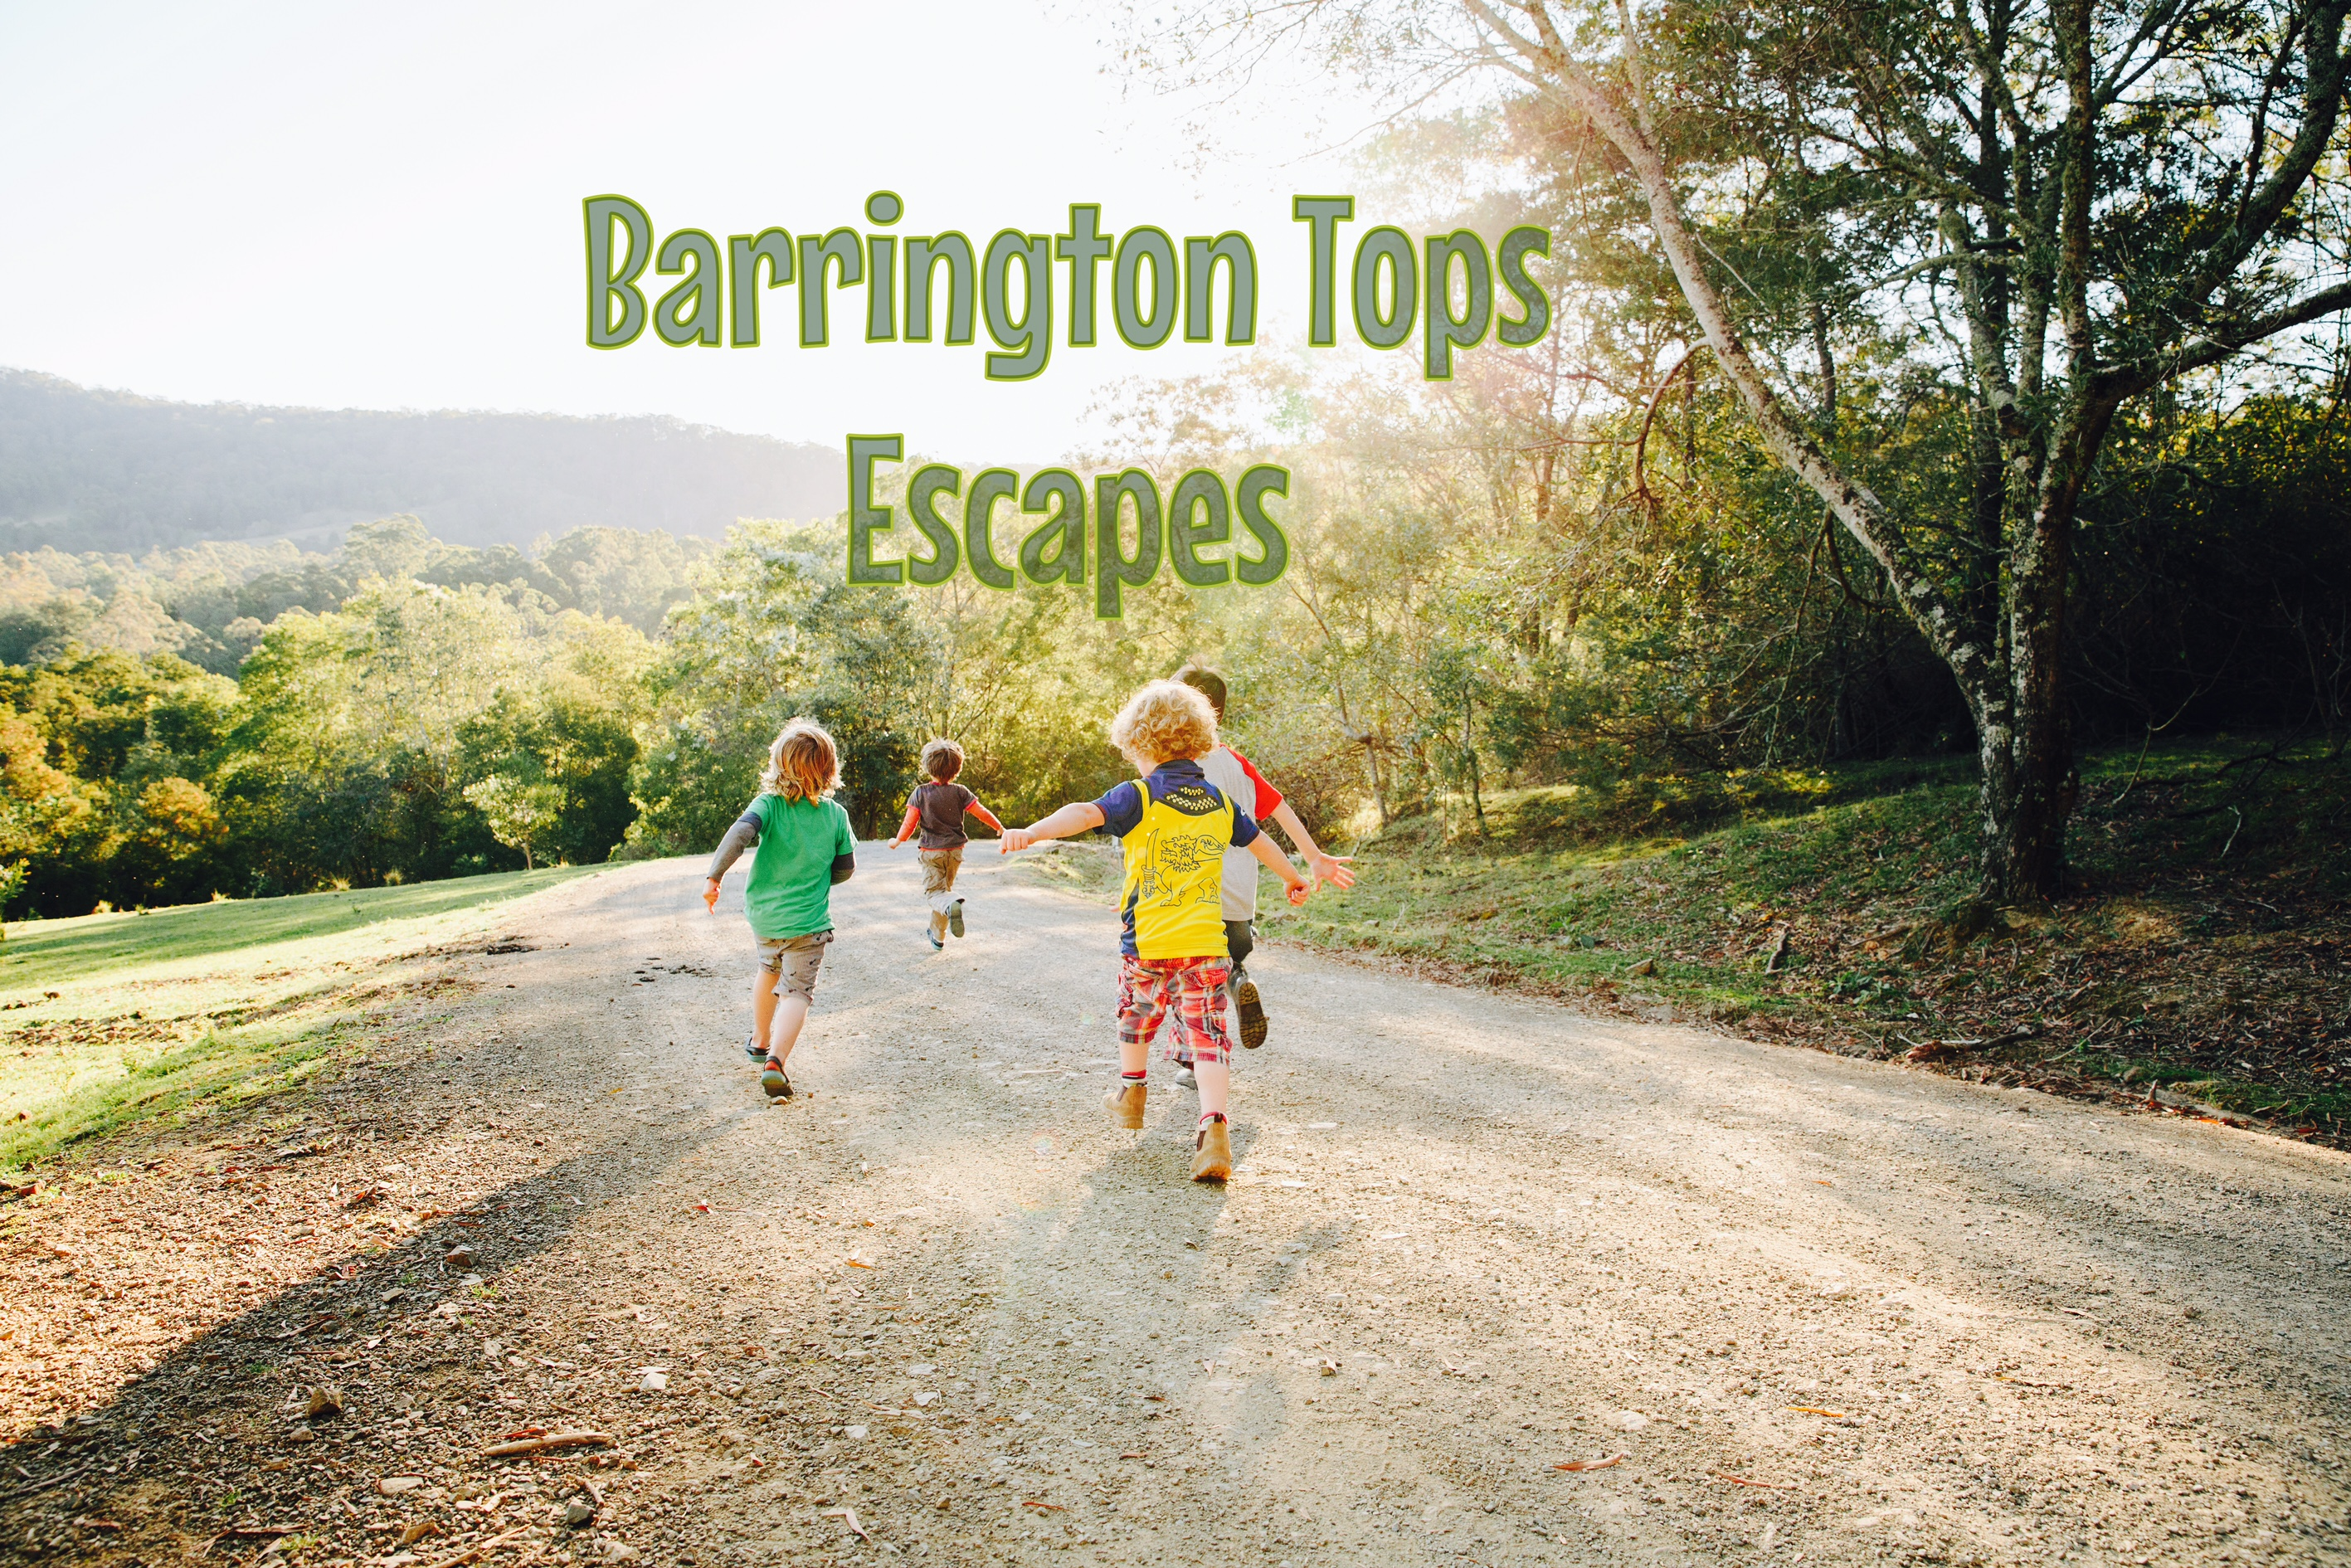 barrington tops escapes